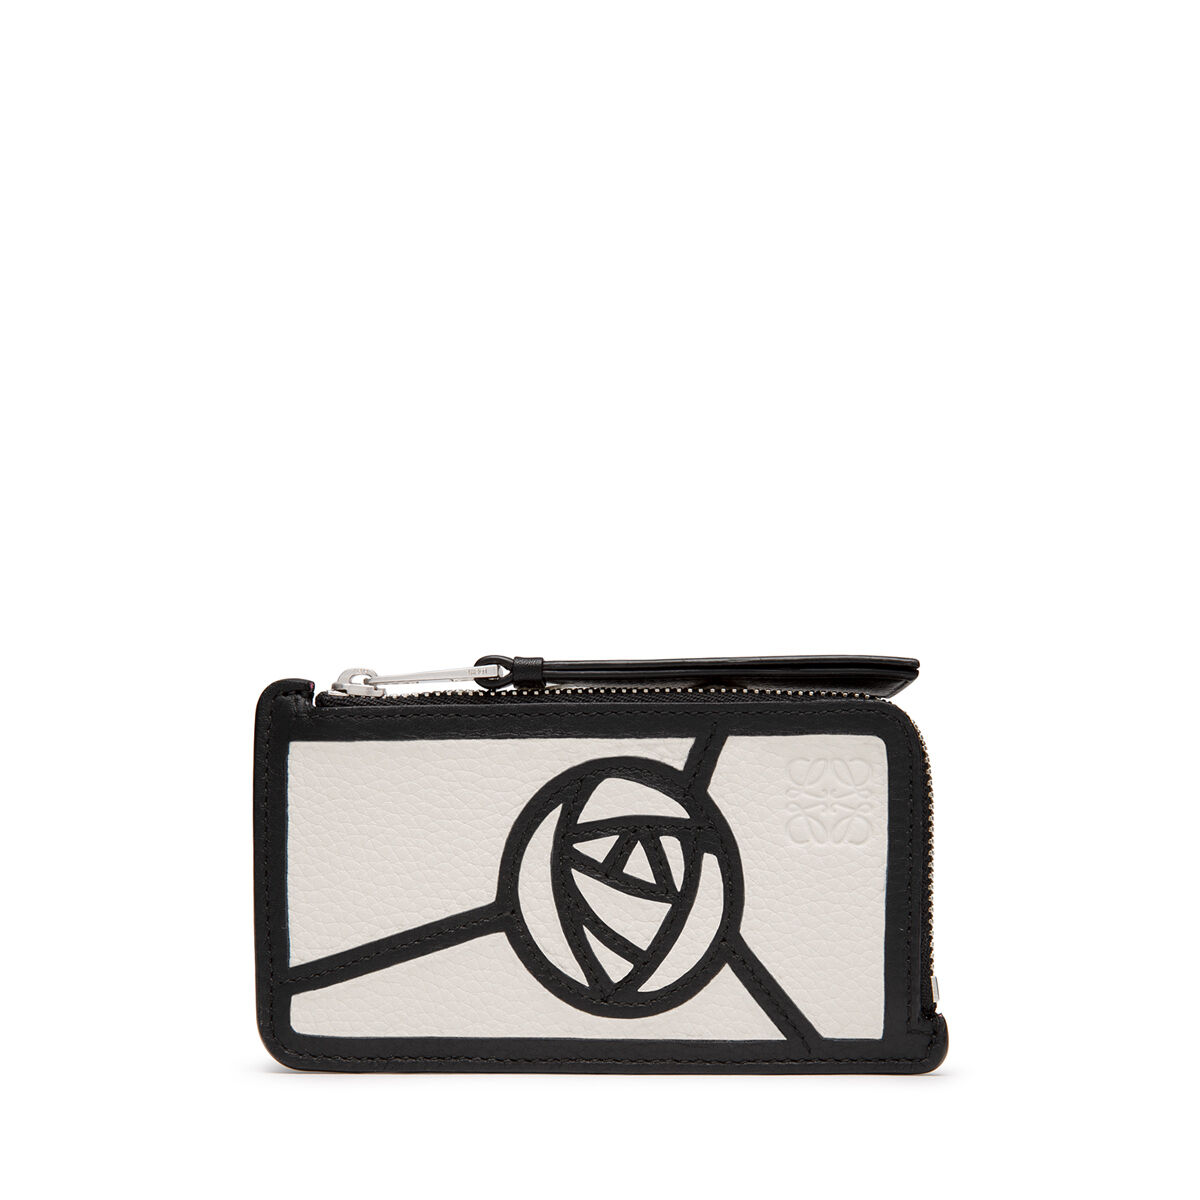 LOEWE Puzzle Coin/Card Holder Roses 白色/黑色 all